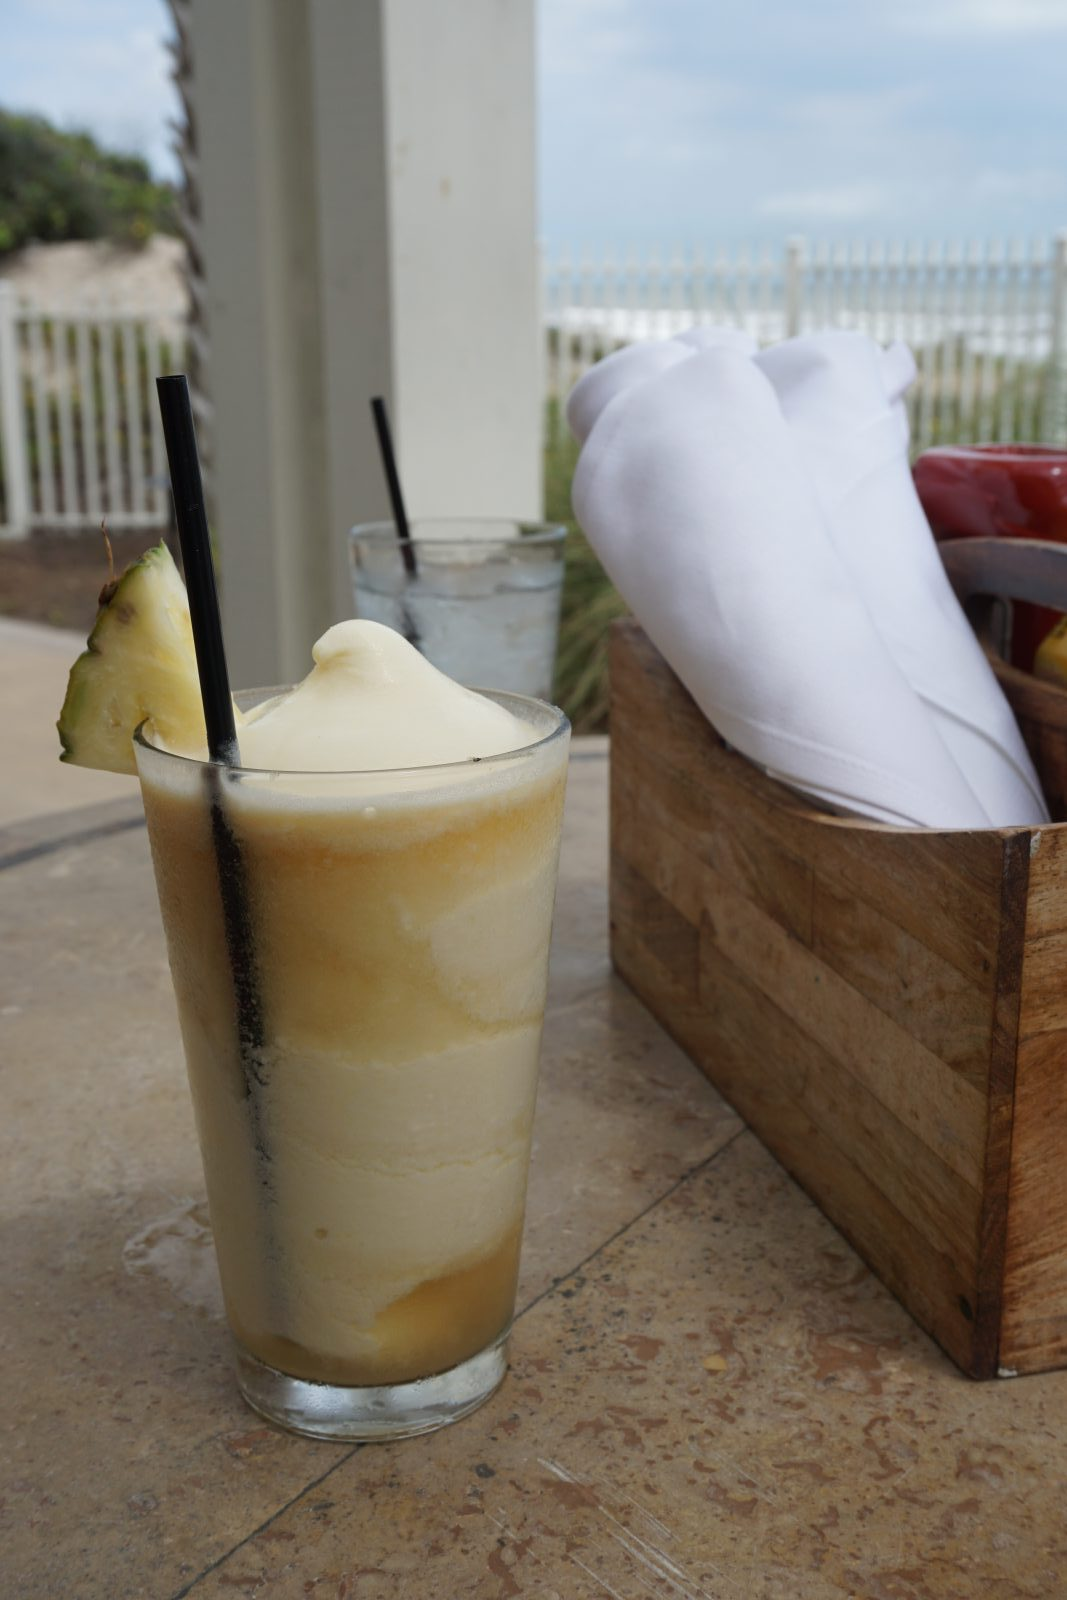 Welcome to Puppies and Piña Coladas!